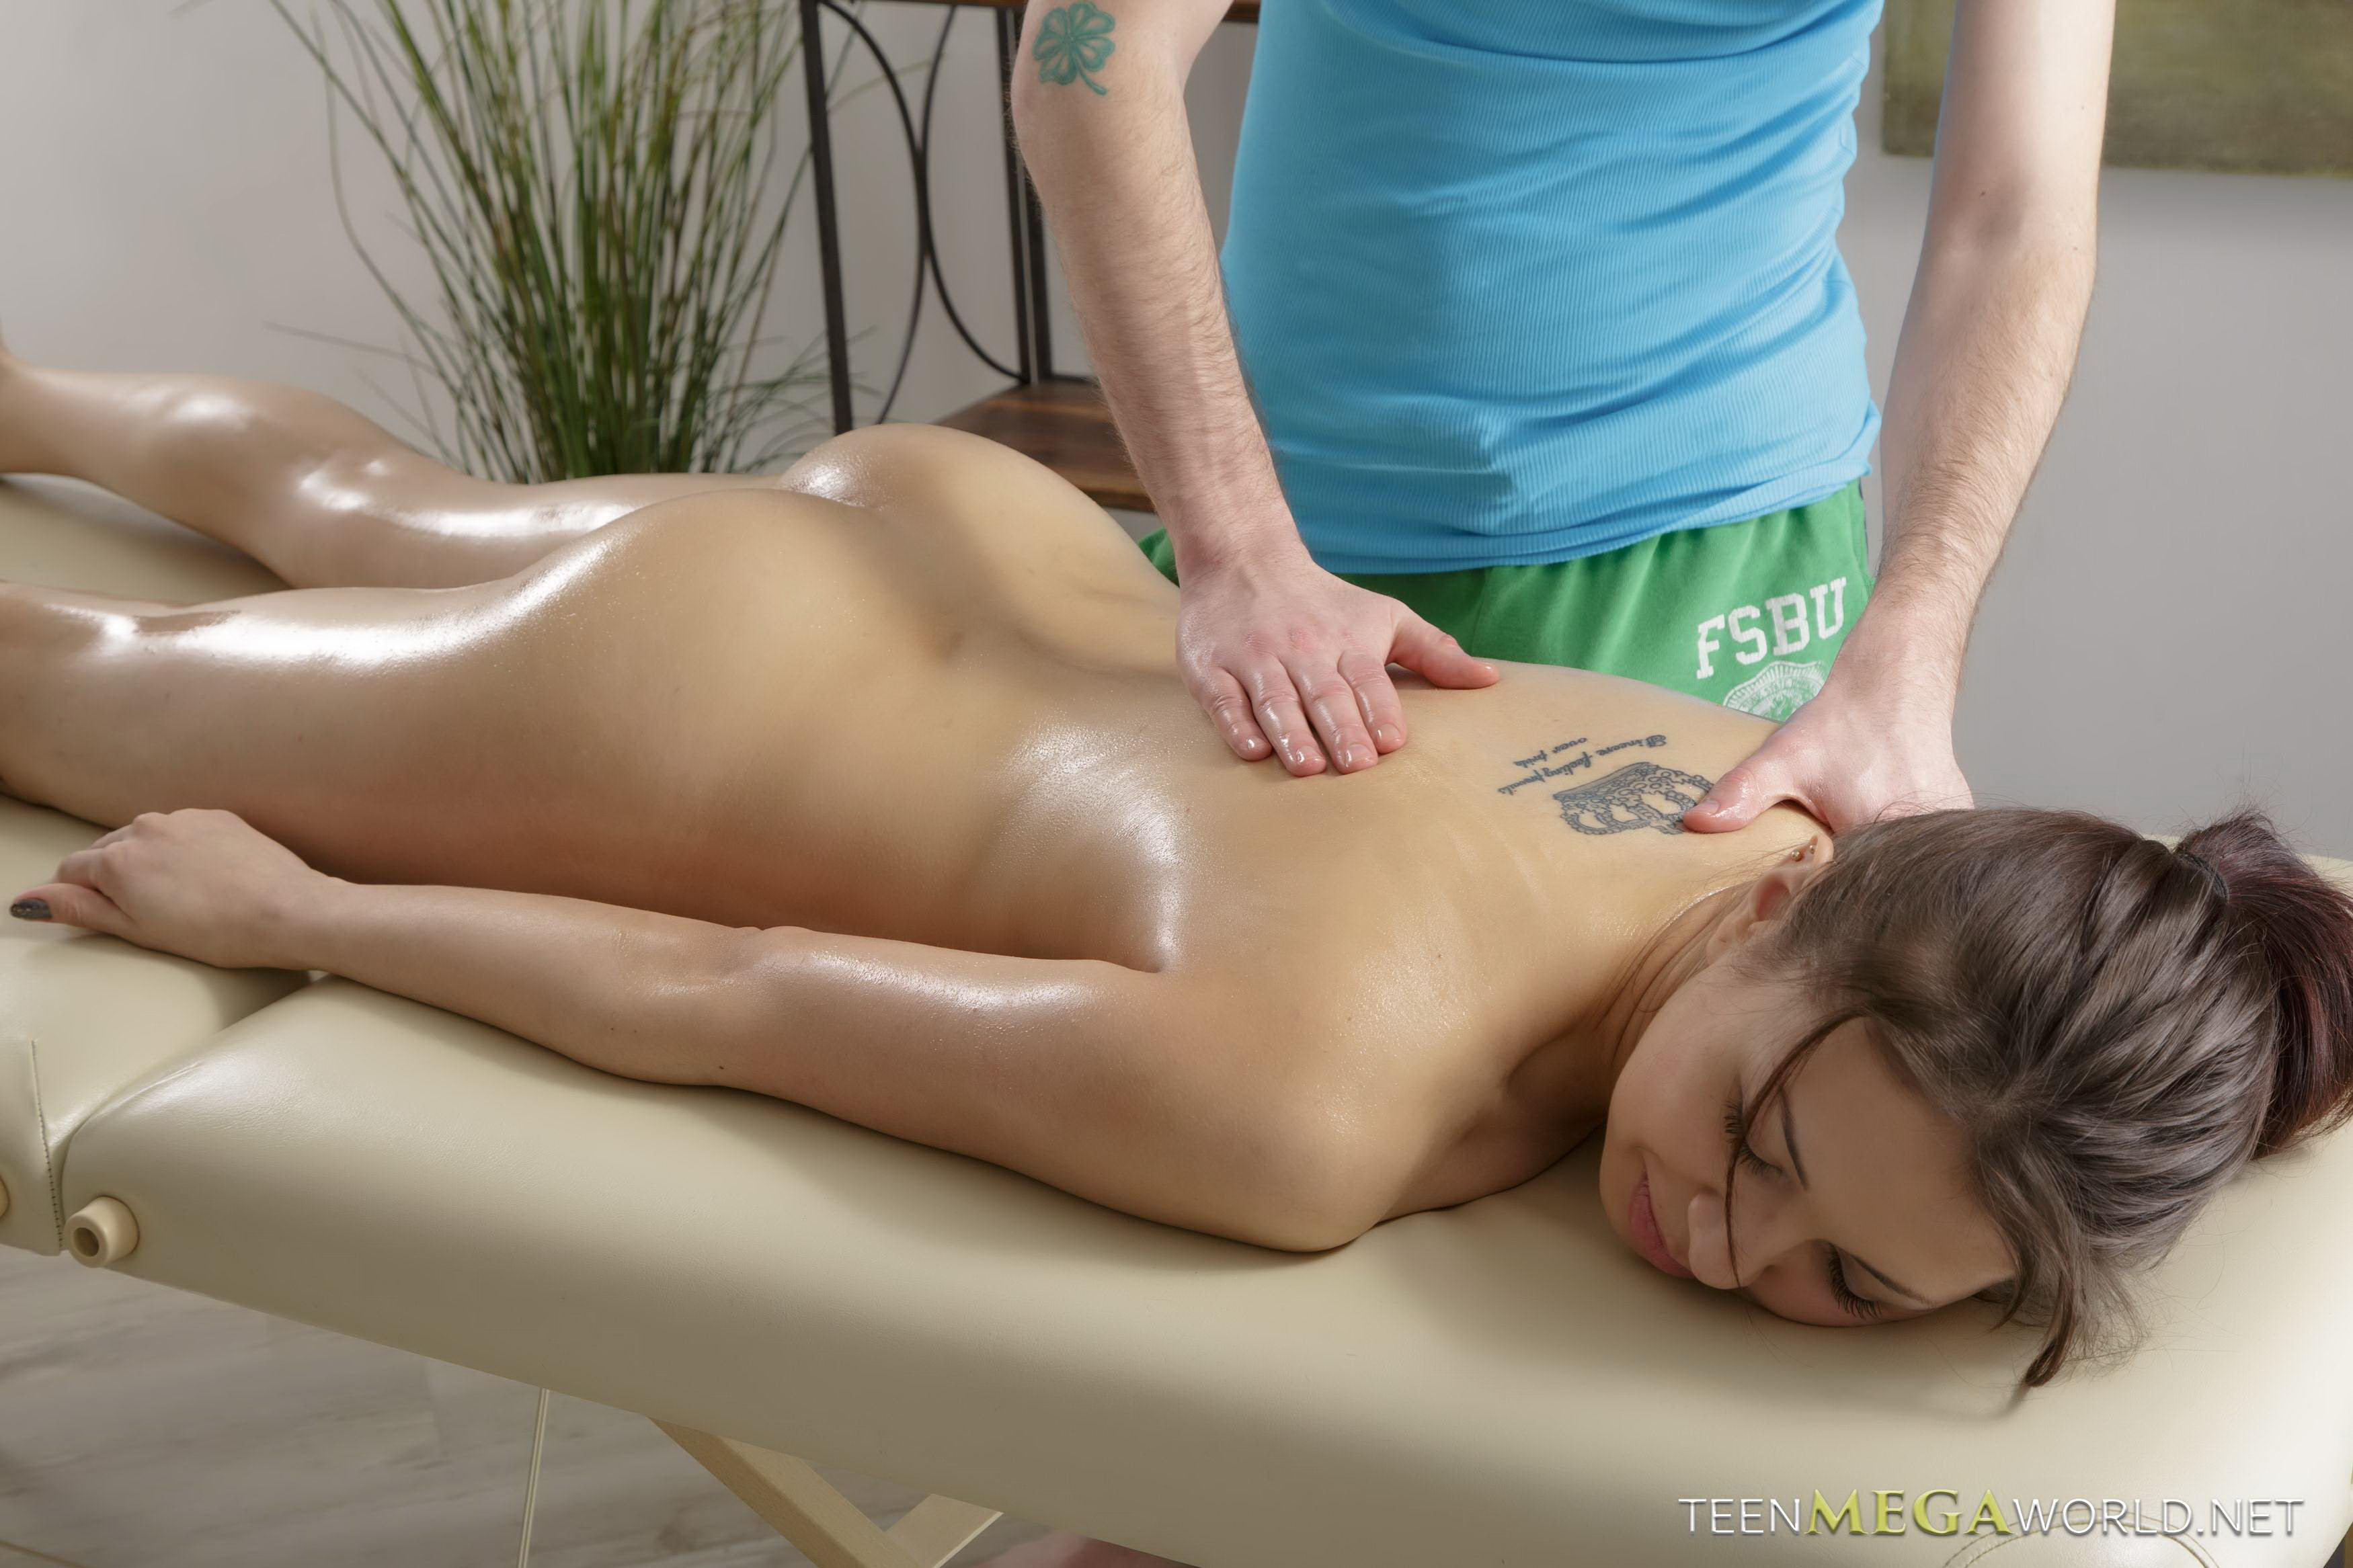 Girl On Girl Naked Massage